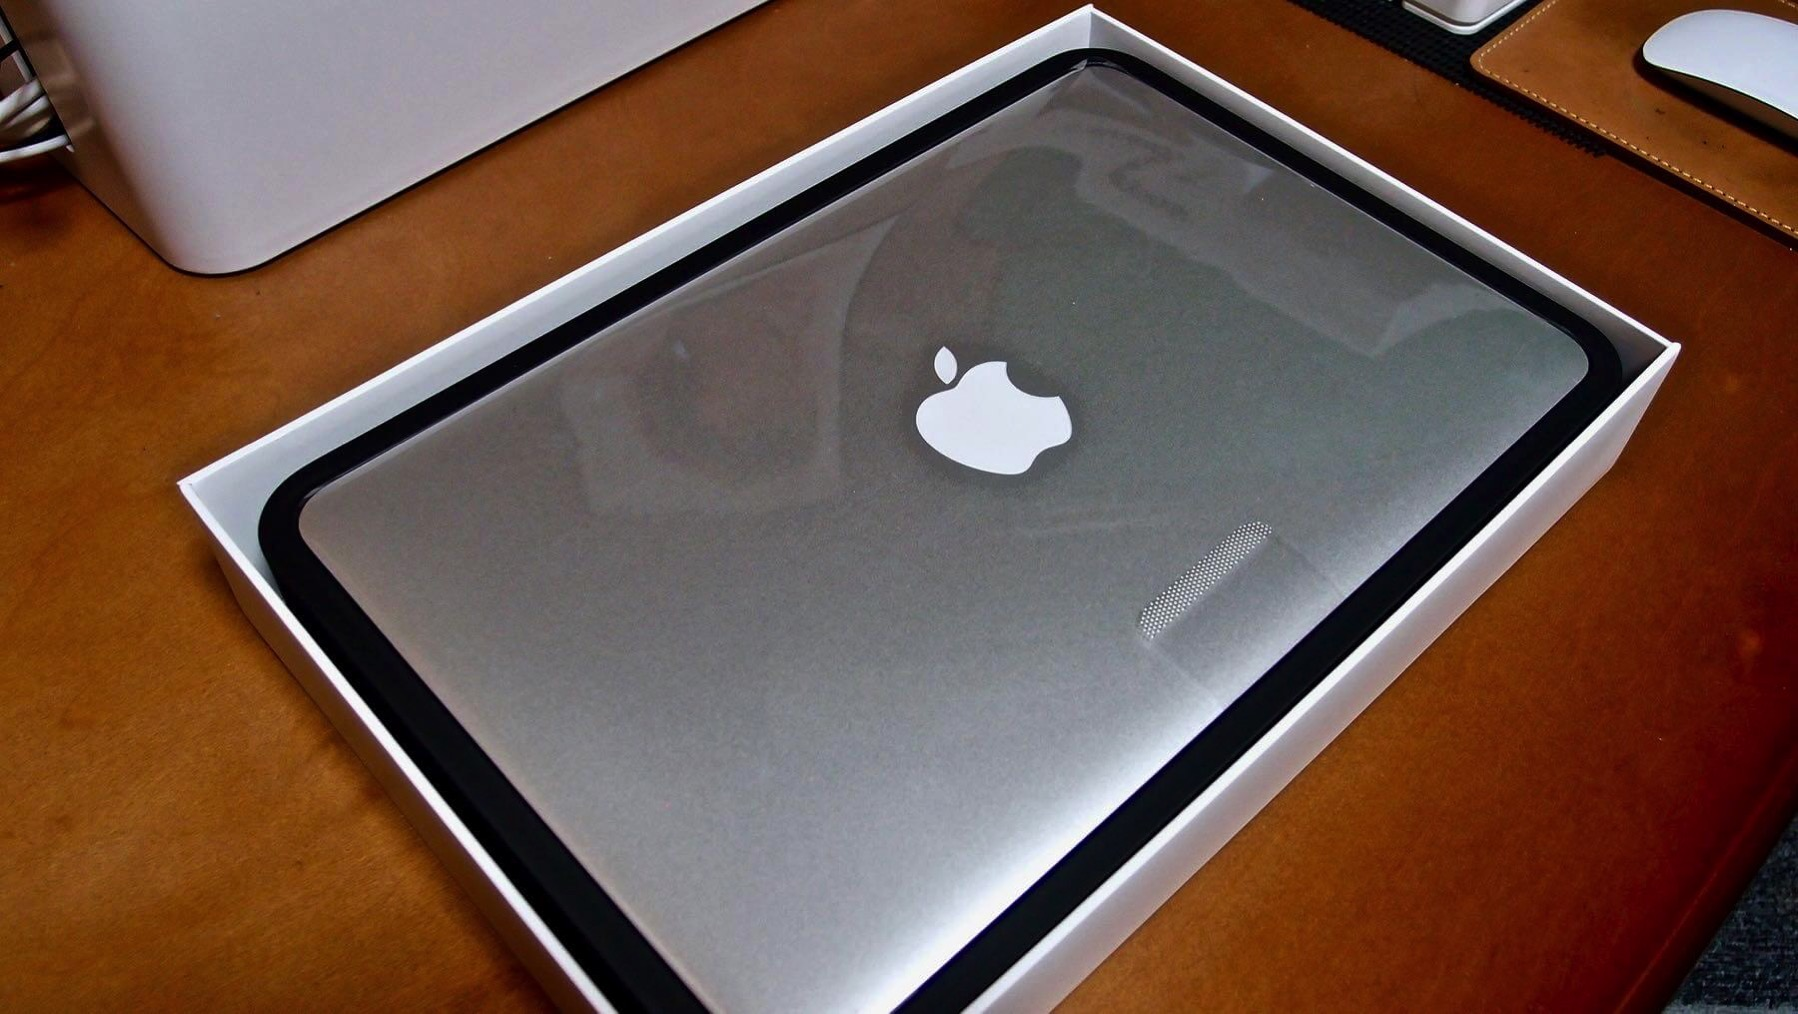 01 MacBook Air2013 Mid 11inch